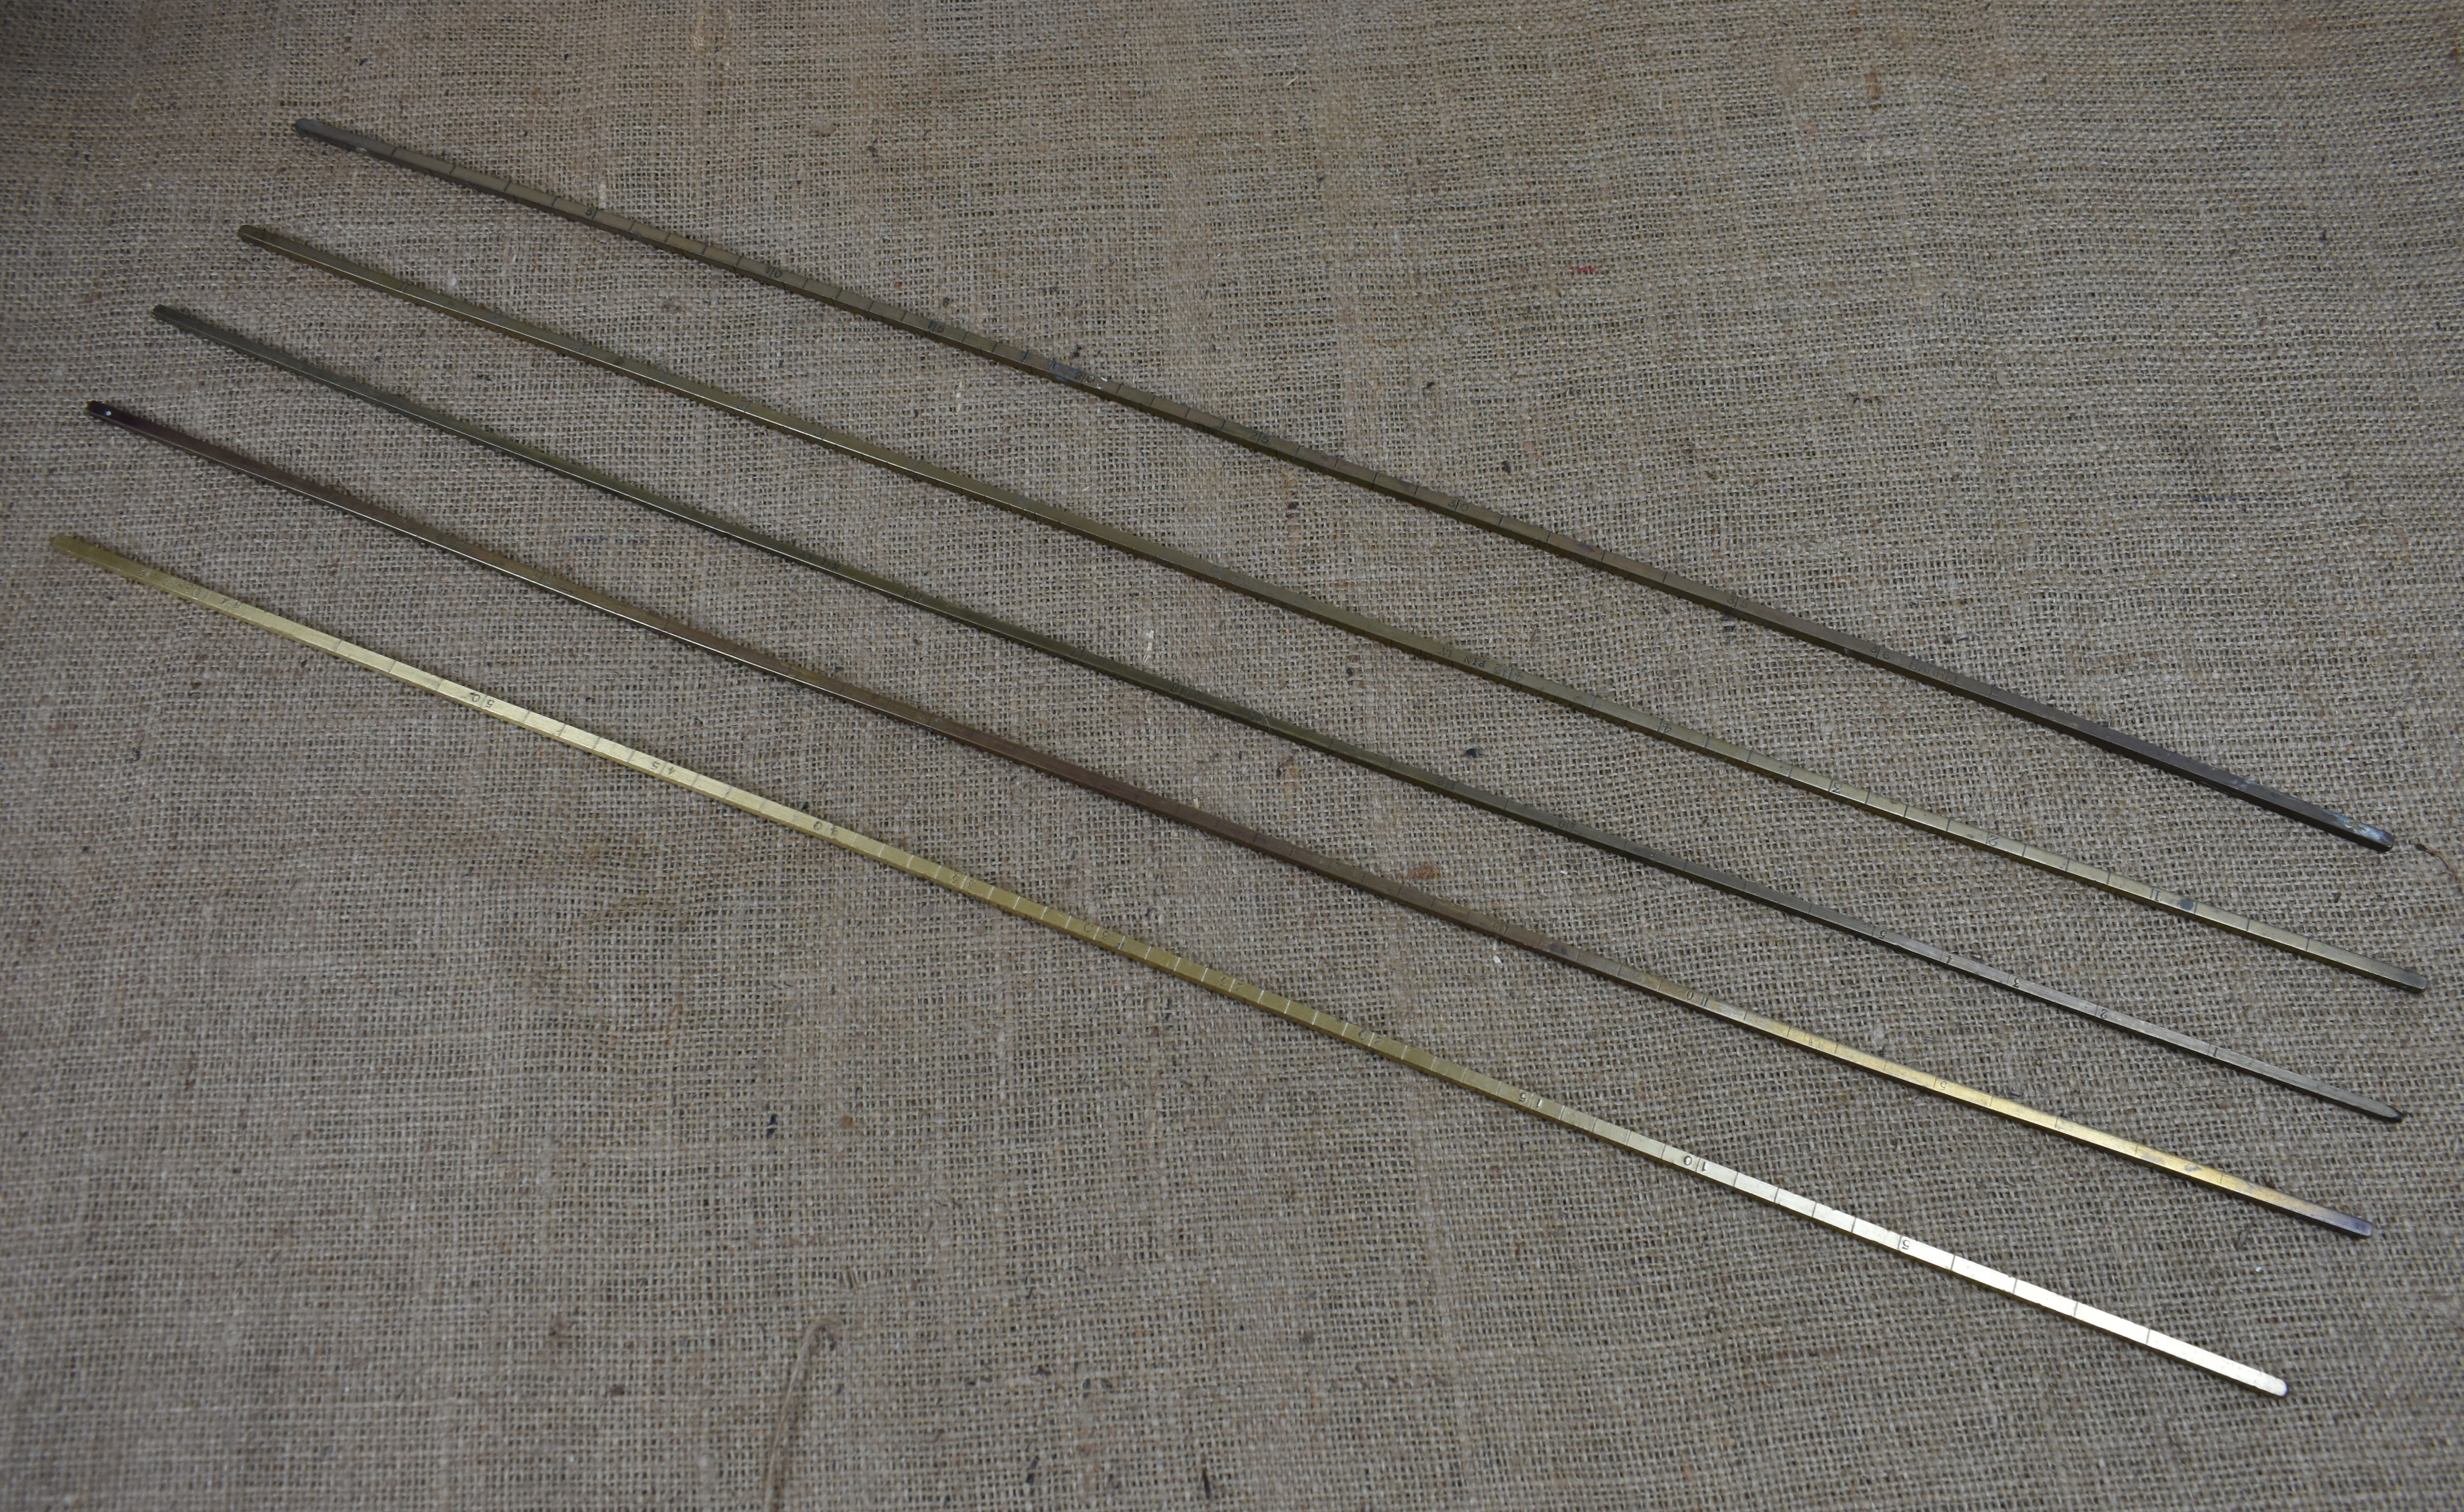 Brass Square Spile Rods